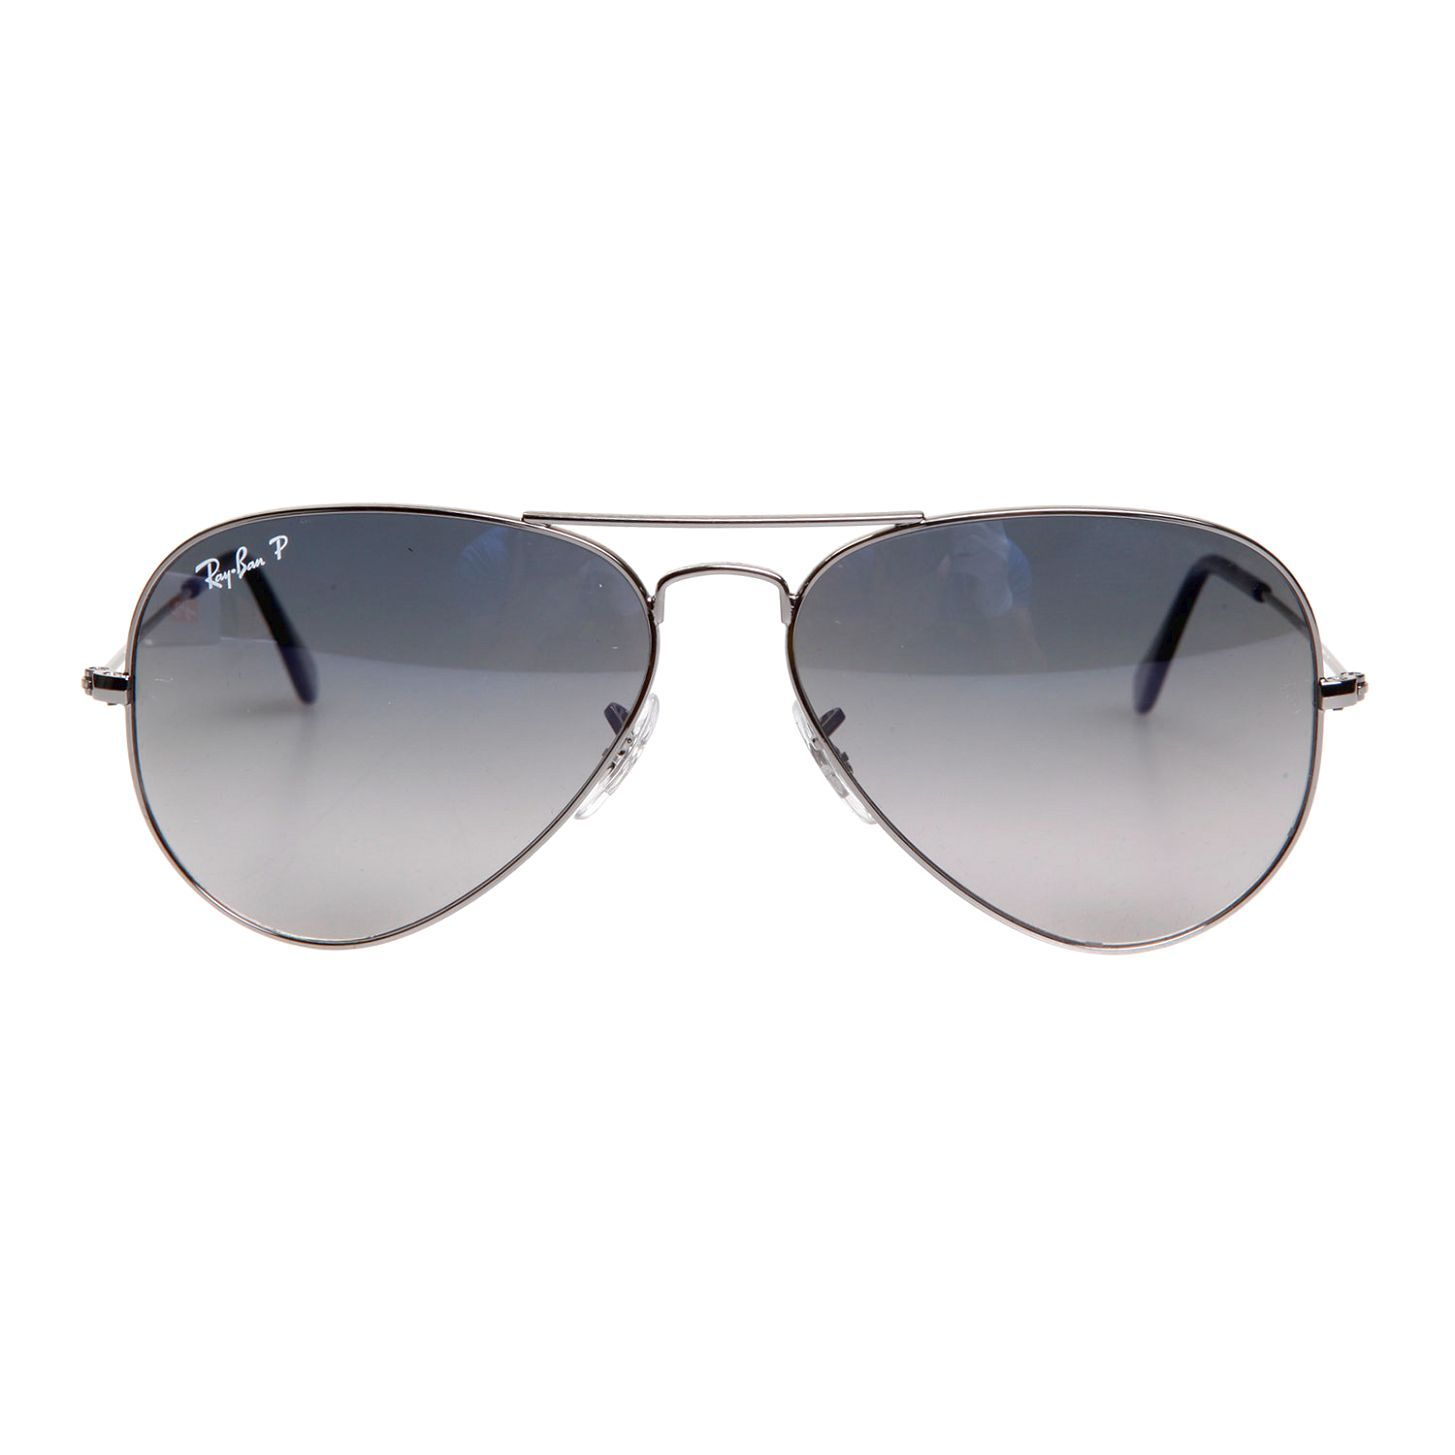 16352a8f948 Ray Ban Aviator Polarized Test - Restaurant and Palinka Bar